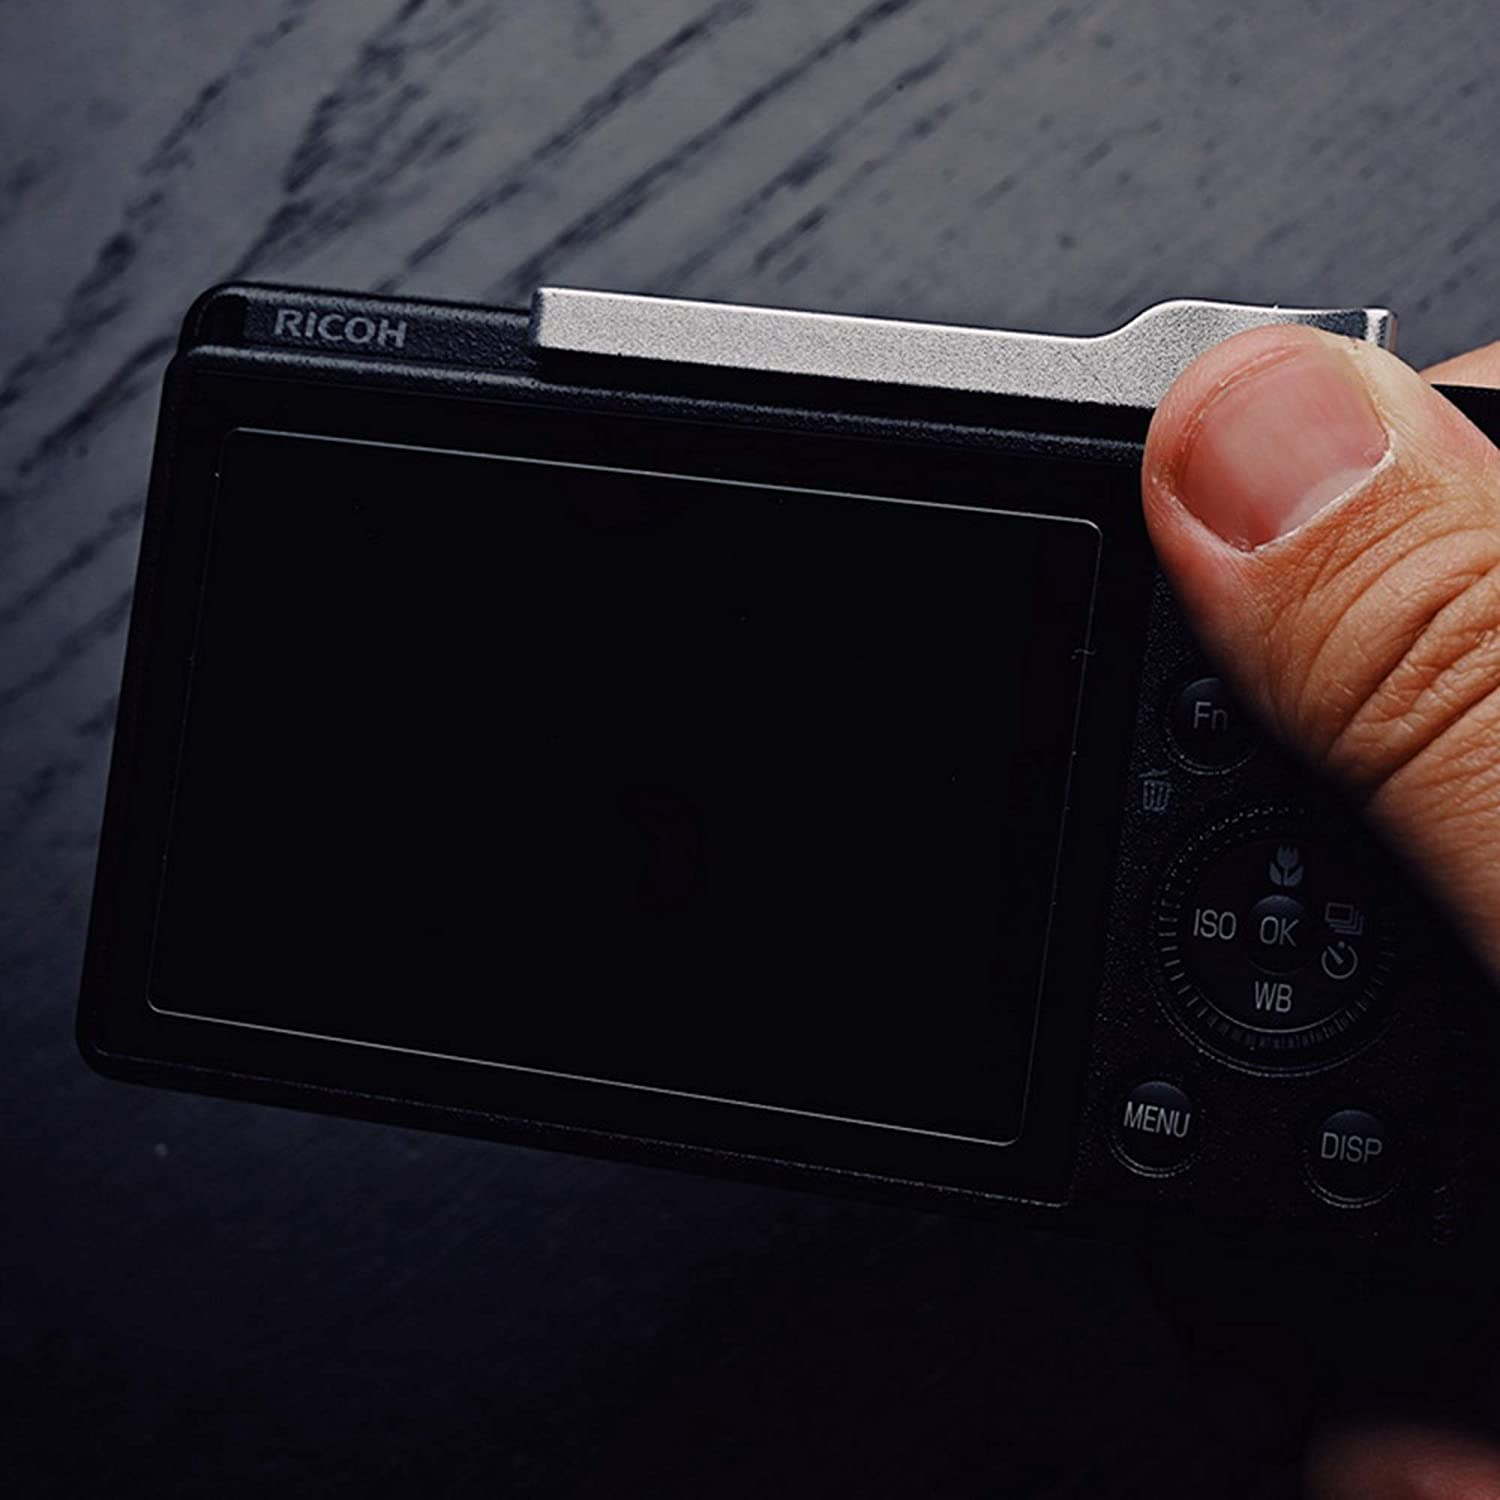 Silver RAYANSPHOTO Thumb Rest Grip with Camera Hot Shoe Cover for RICOH GR3 GRIII